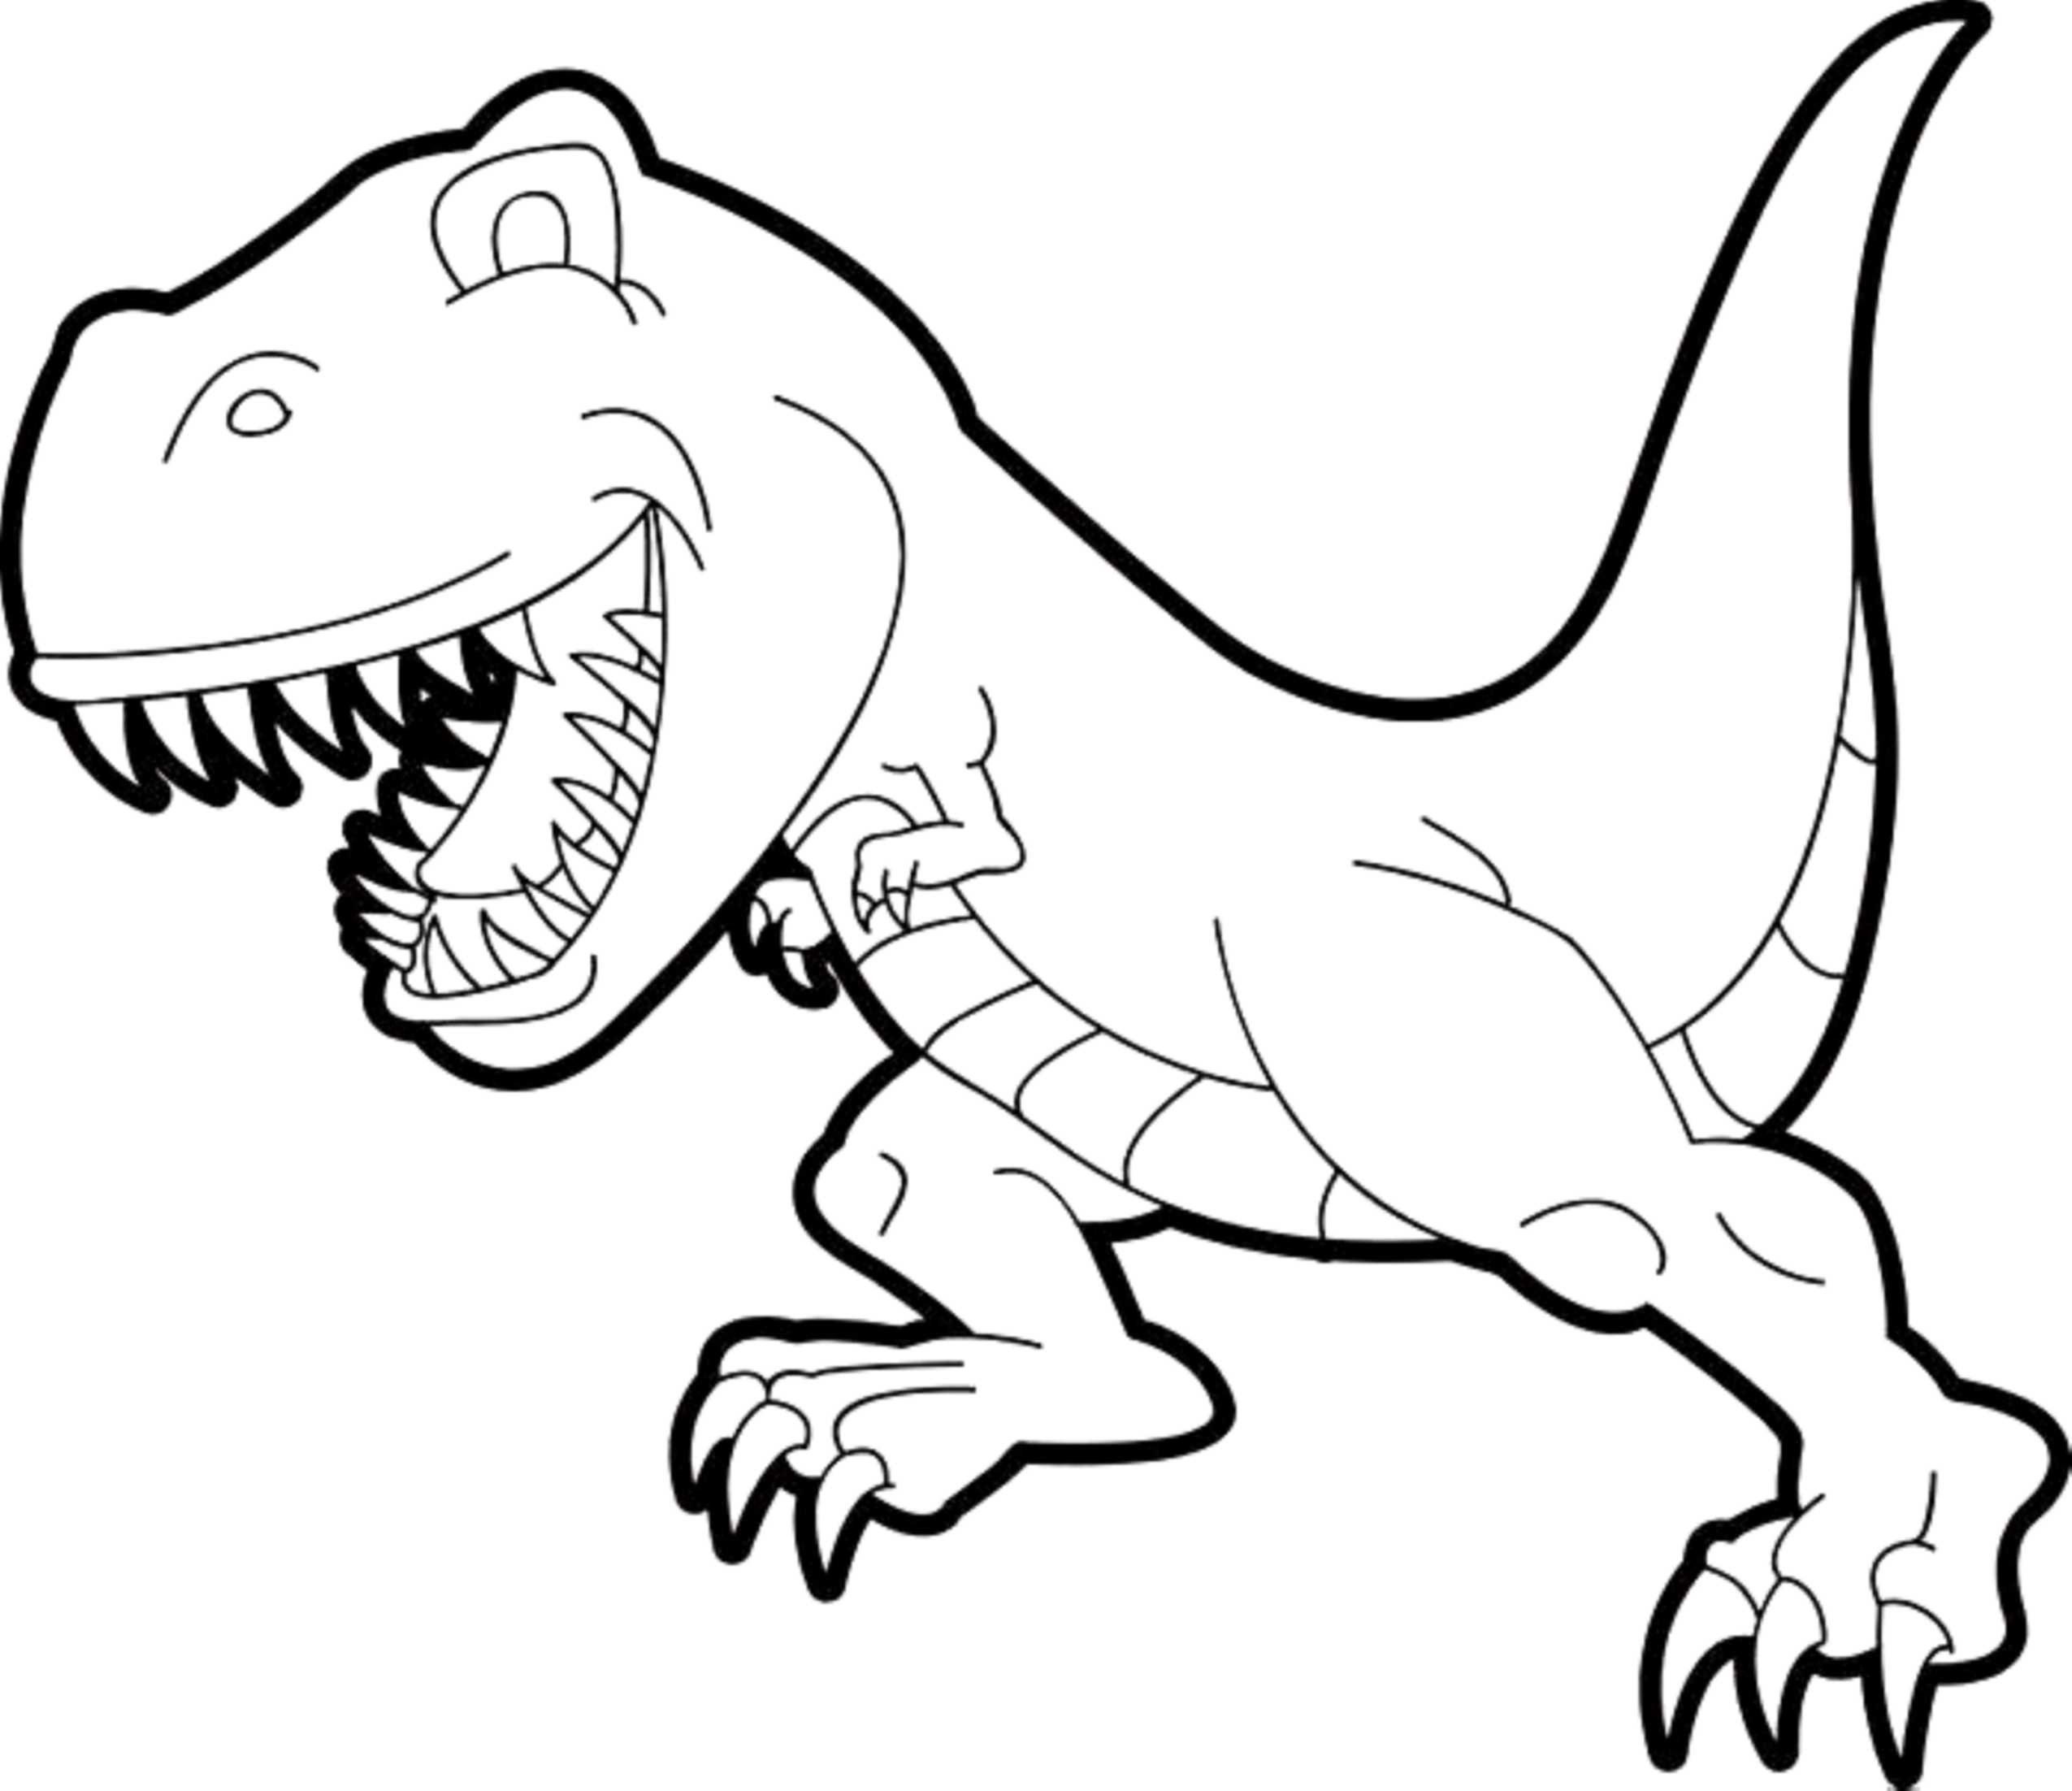 Dinosaurs T Rex Coloring Pages Dinosaur coloring pages